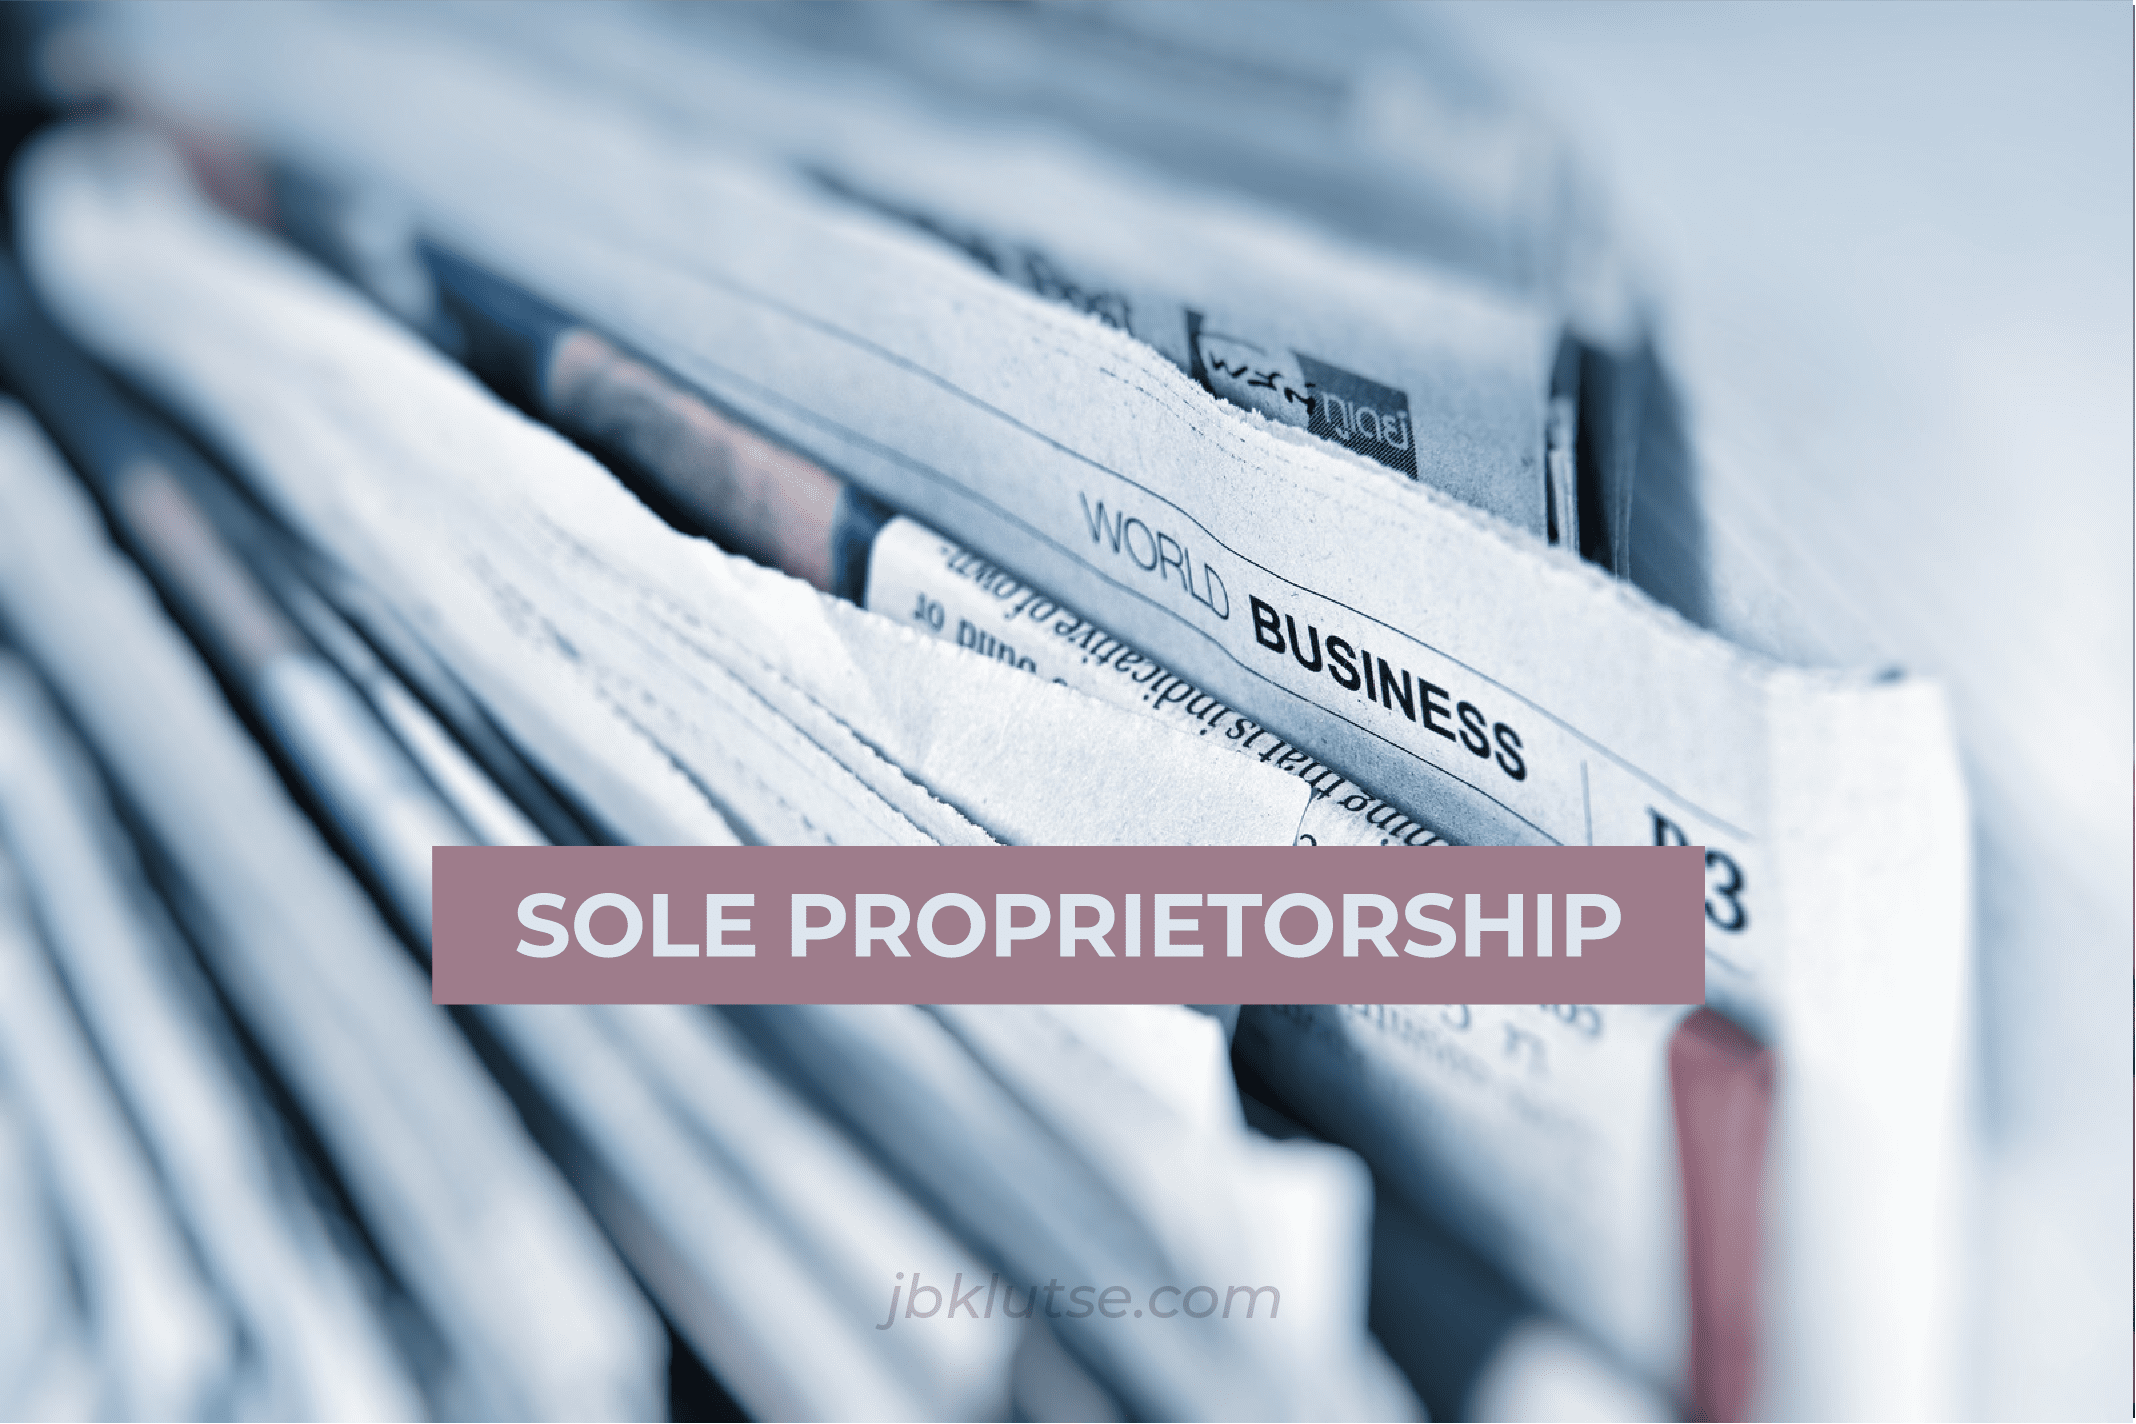 Here's how to renew your sole proprietorship license in Ghana